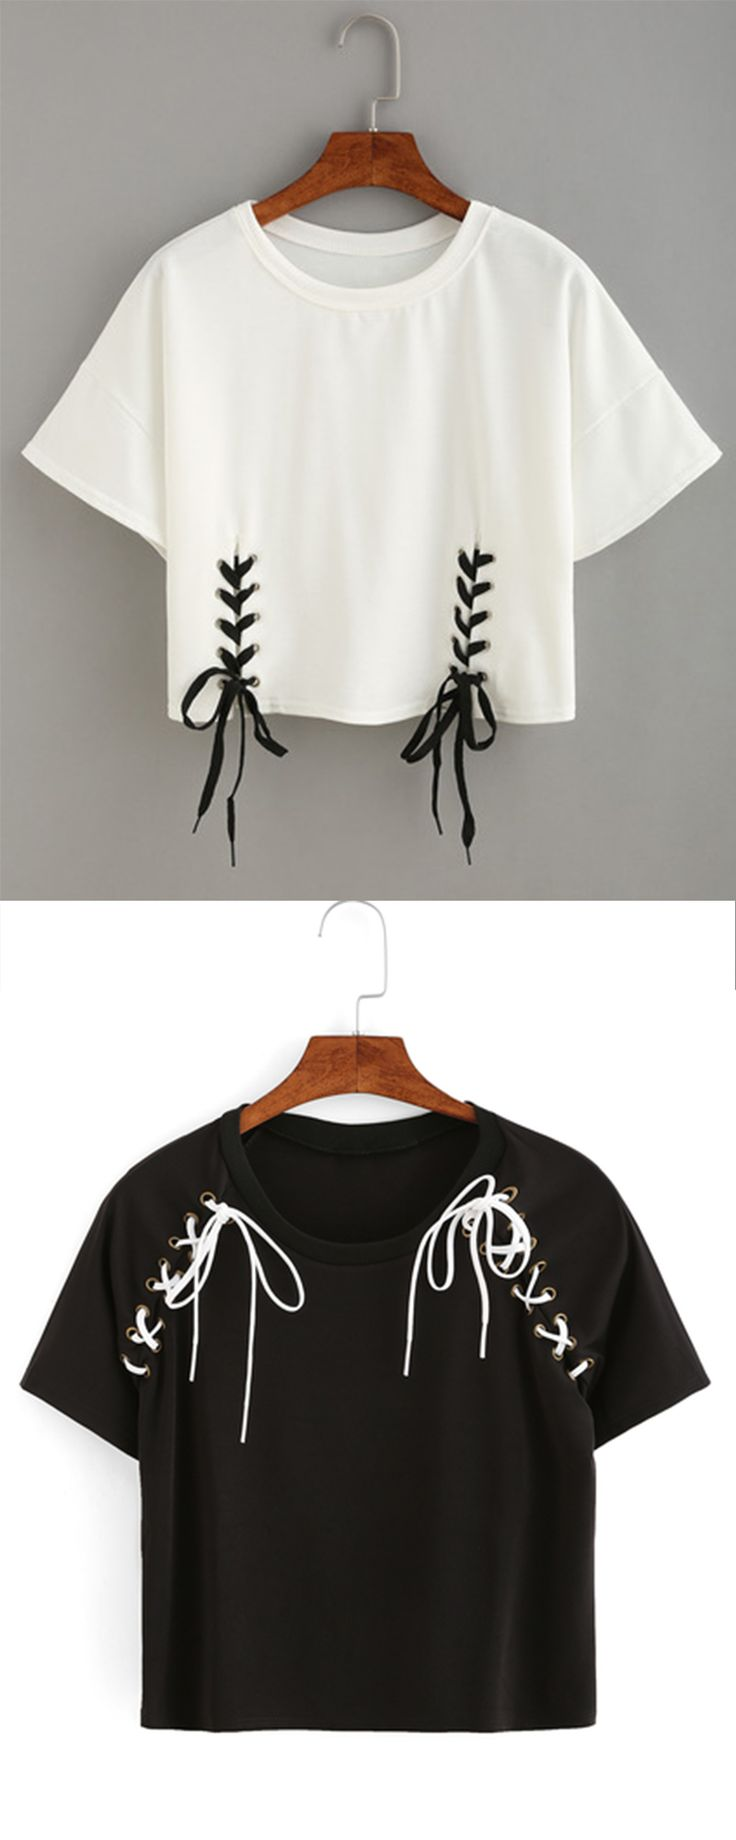 Design t shirt easy - Double Lace Up Hem Crop T Shirt